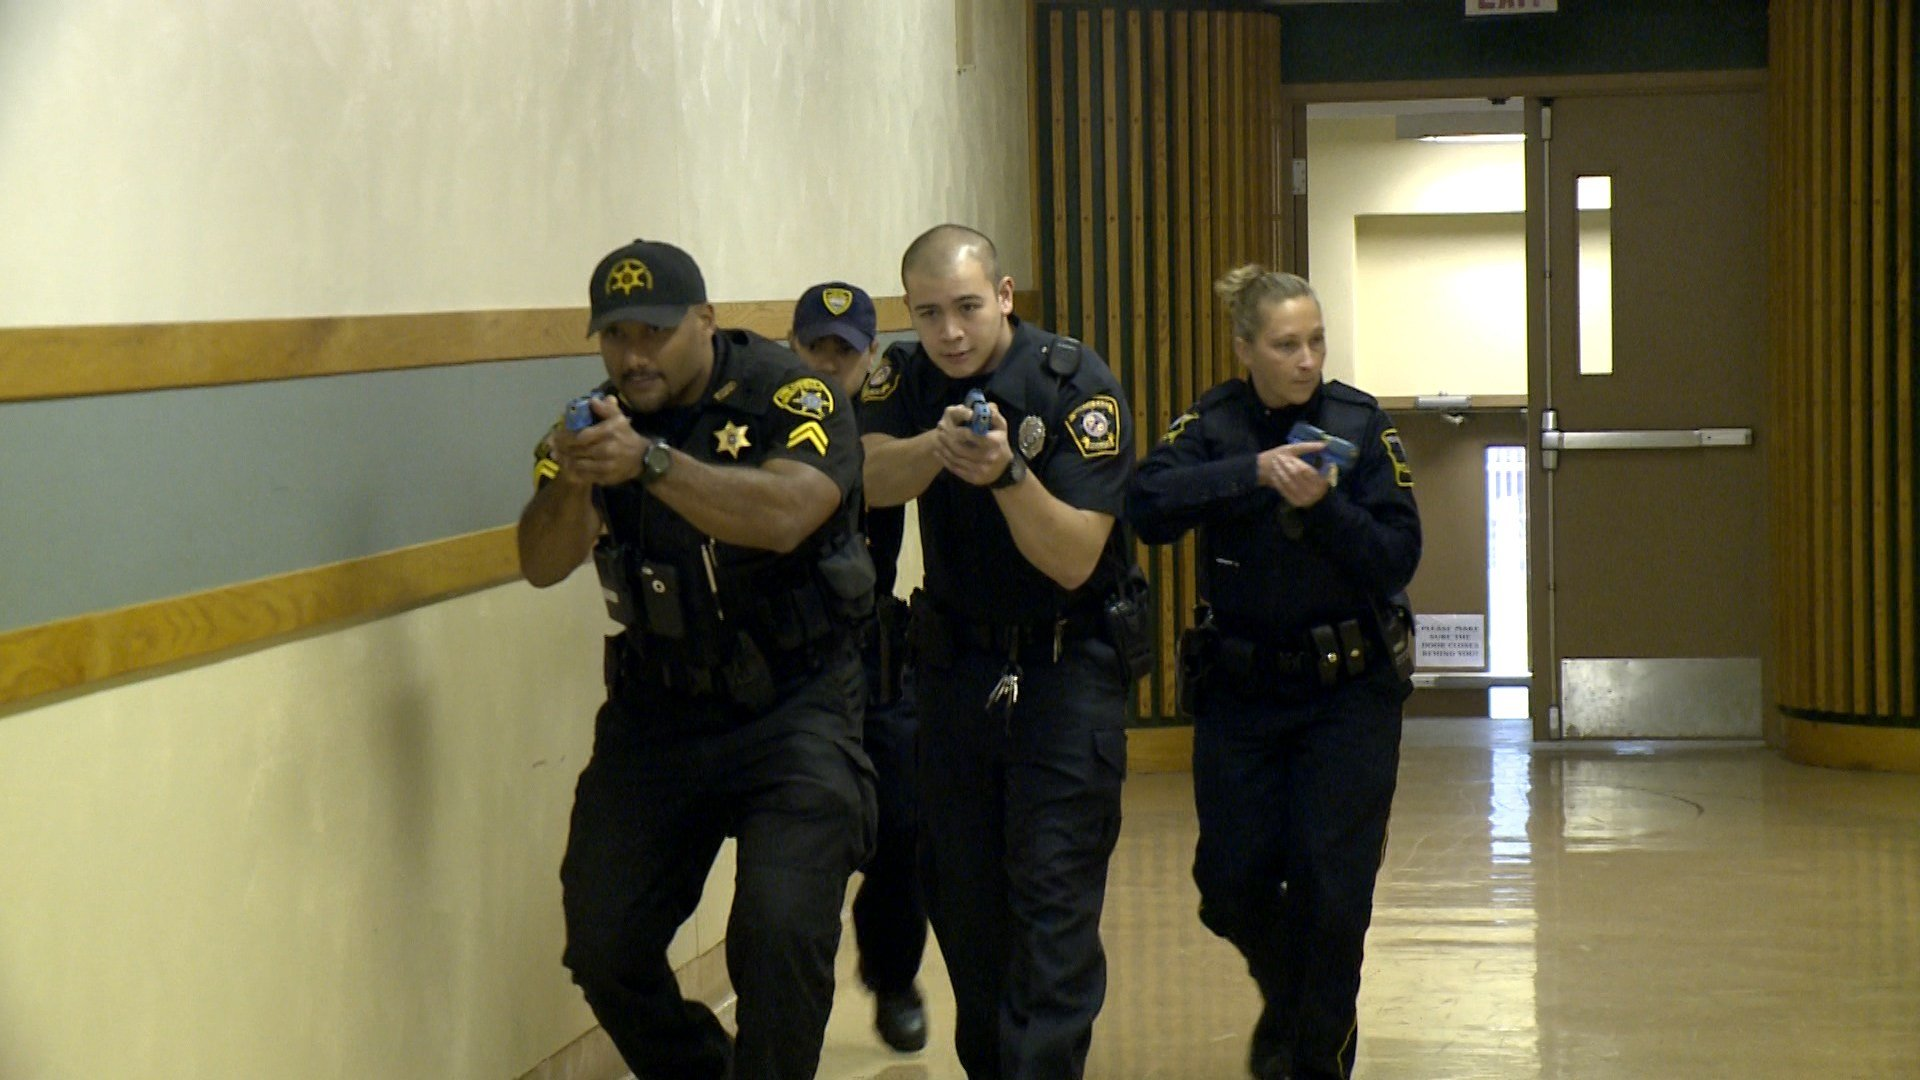 Local Police Take Part In Active Shooter Drill At Former